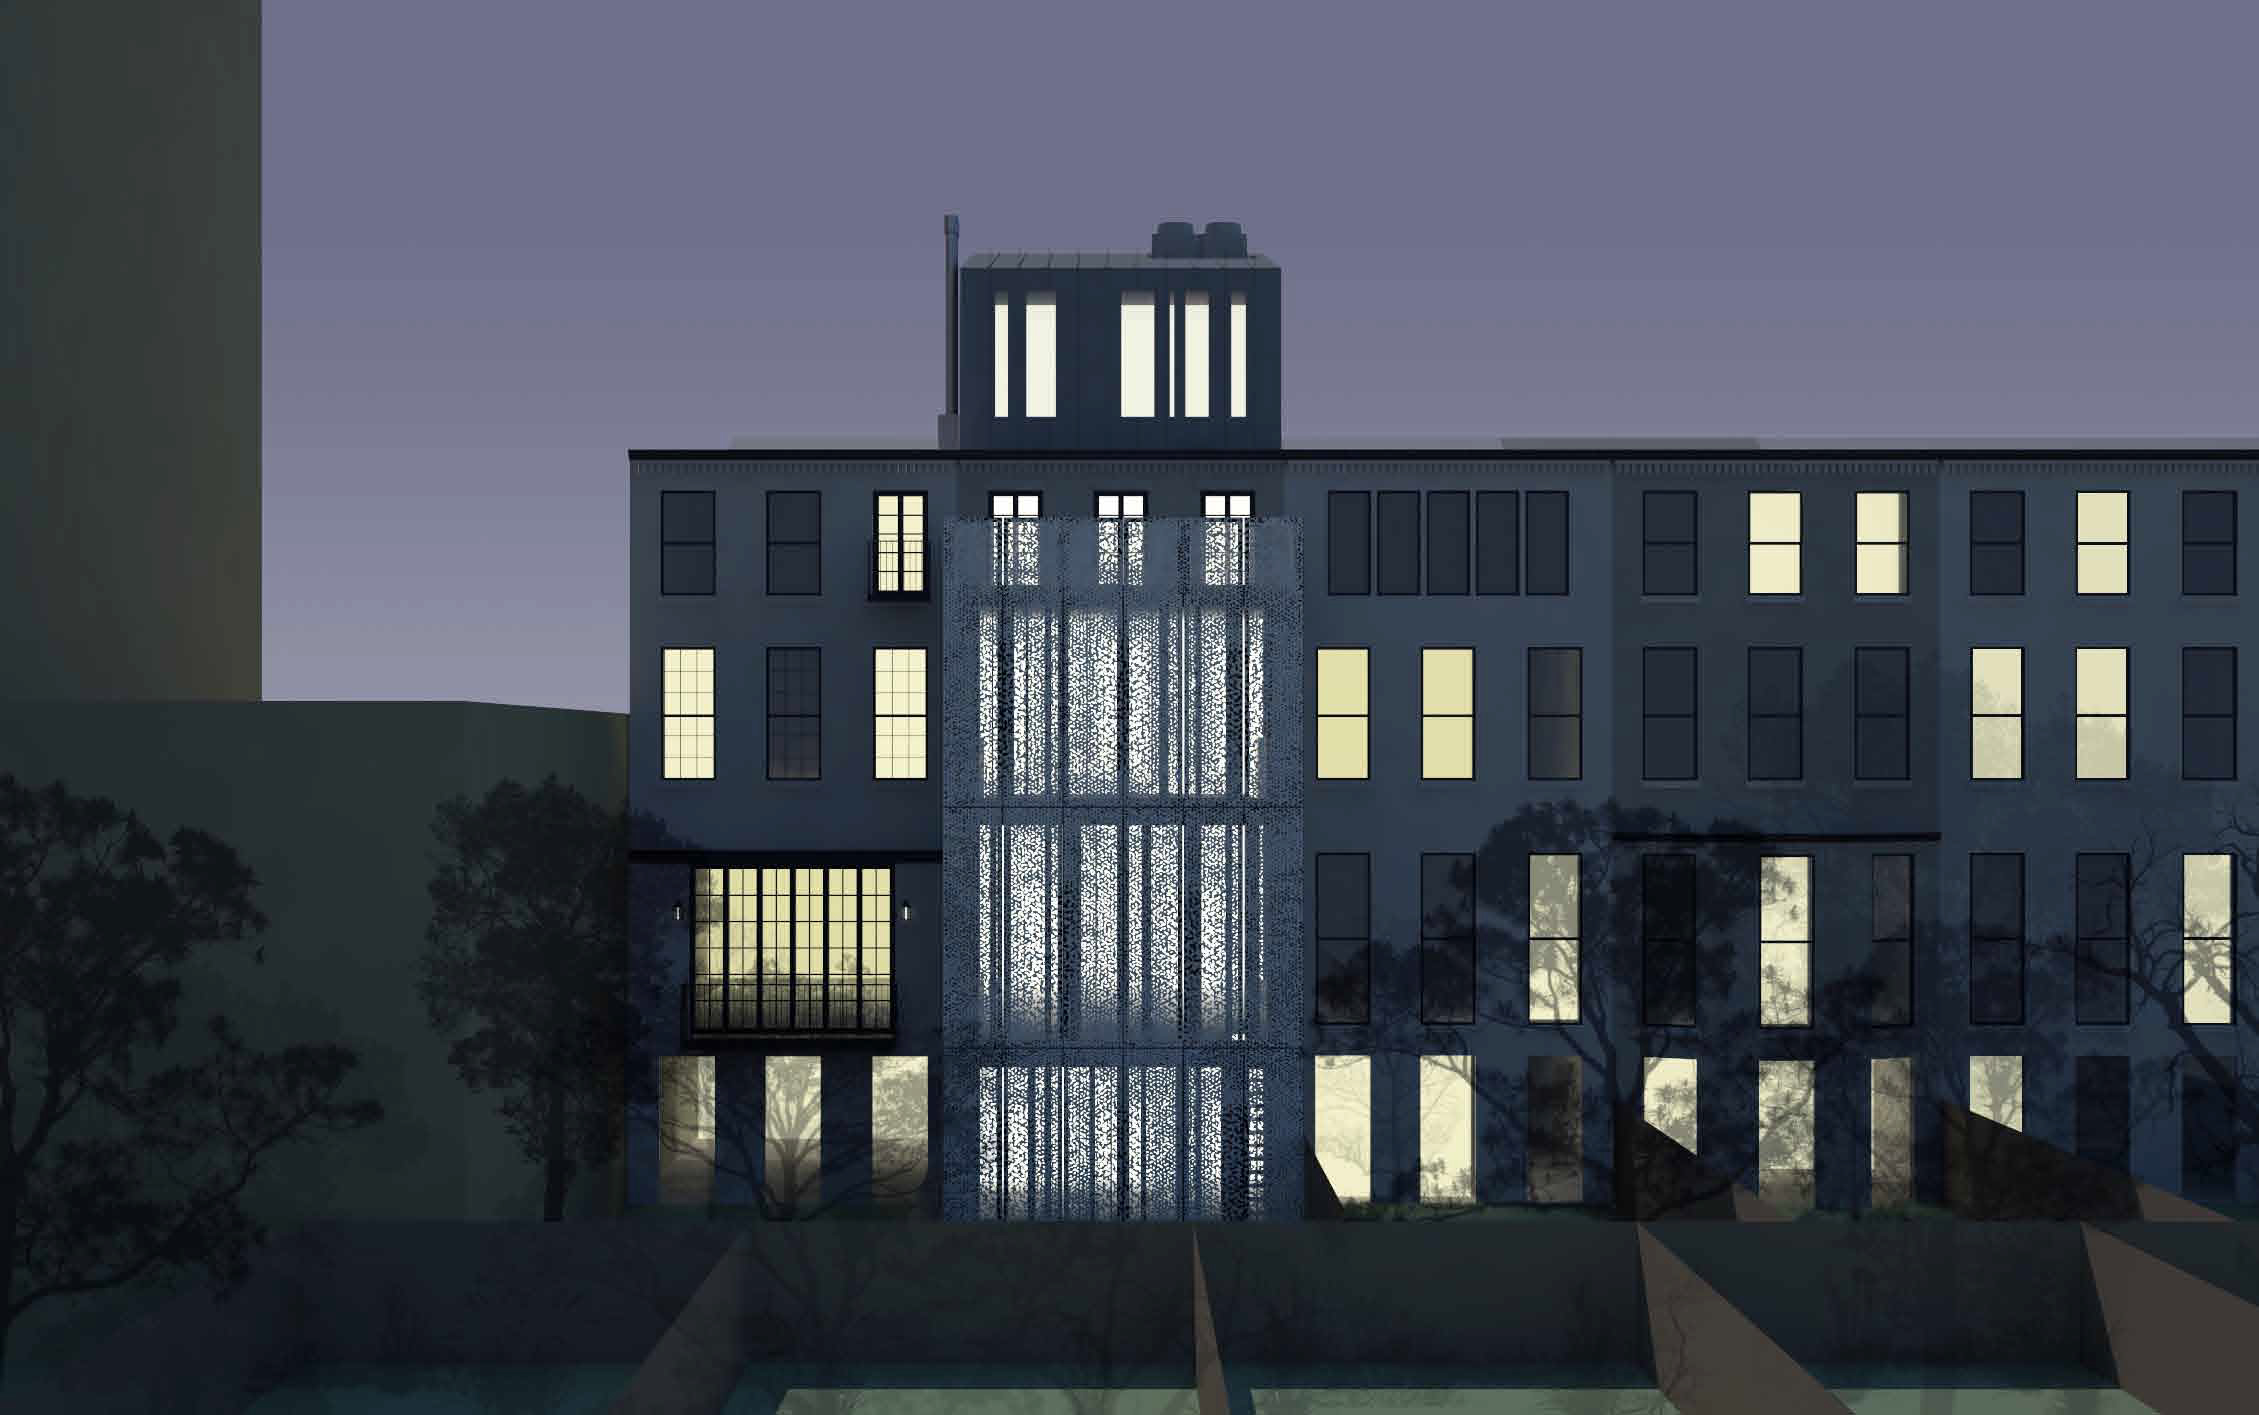 Proposal for the rear of 210 East 62nd Street, night view